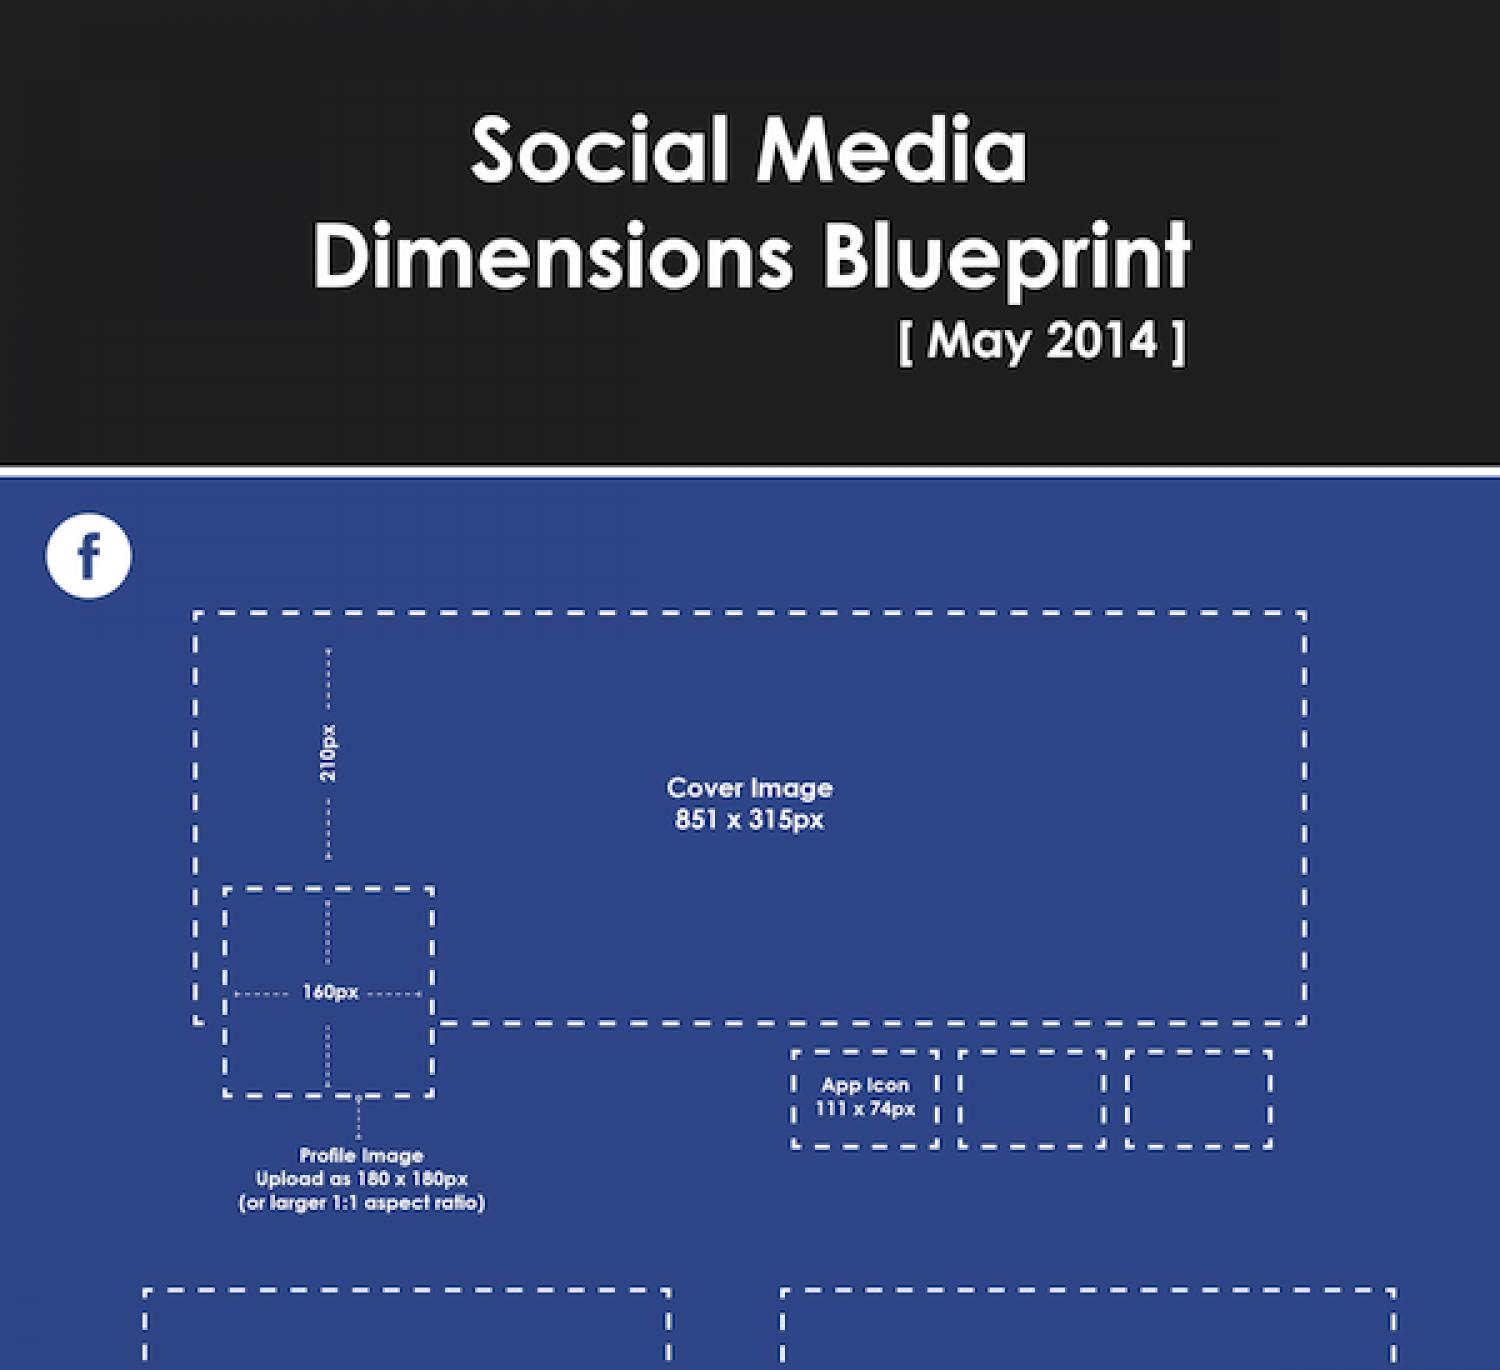 The Social Media Dimensions Blueprint Infographic